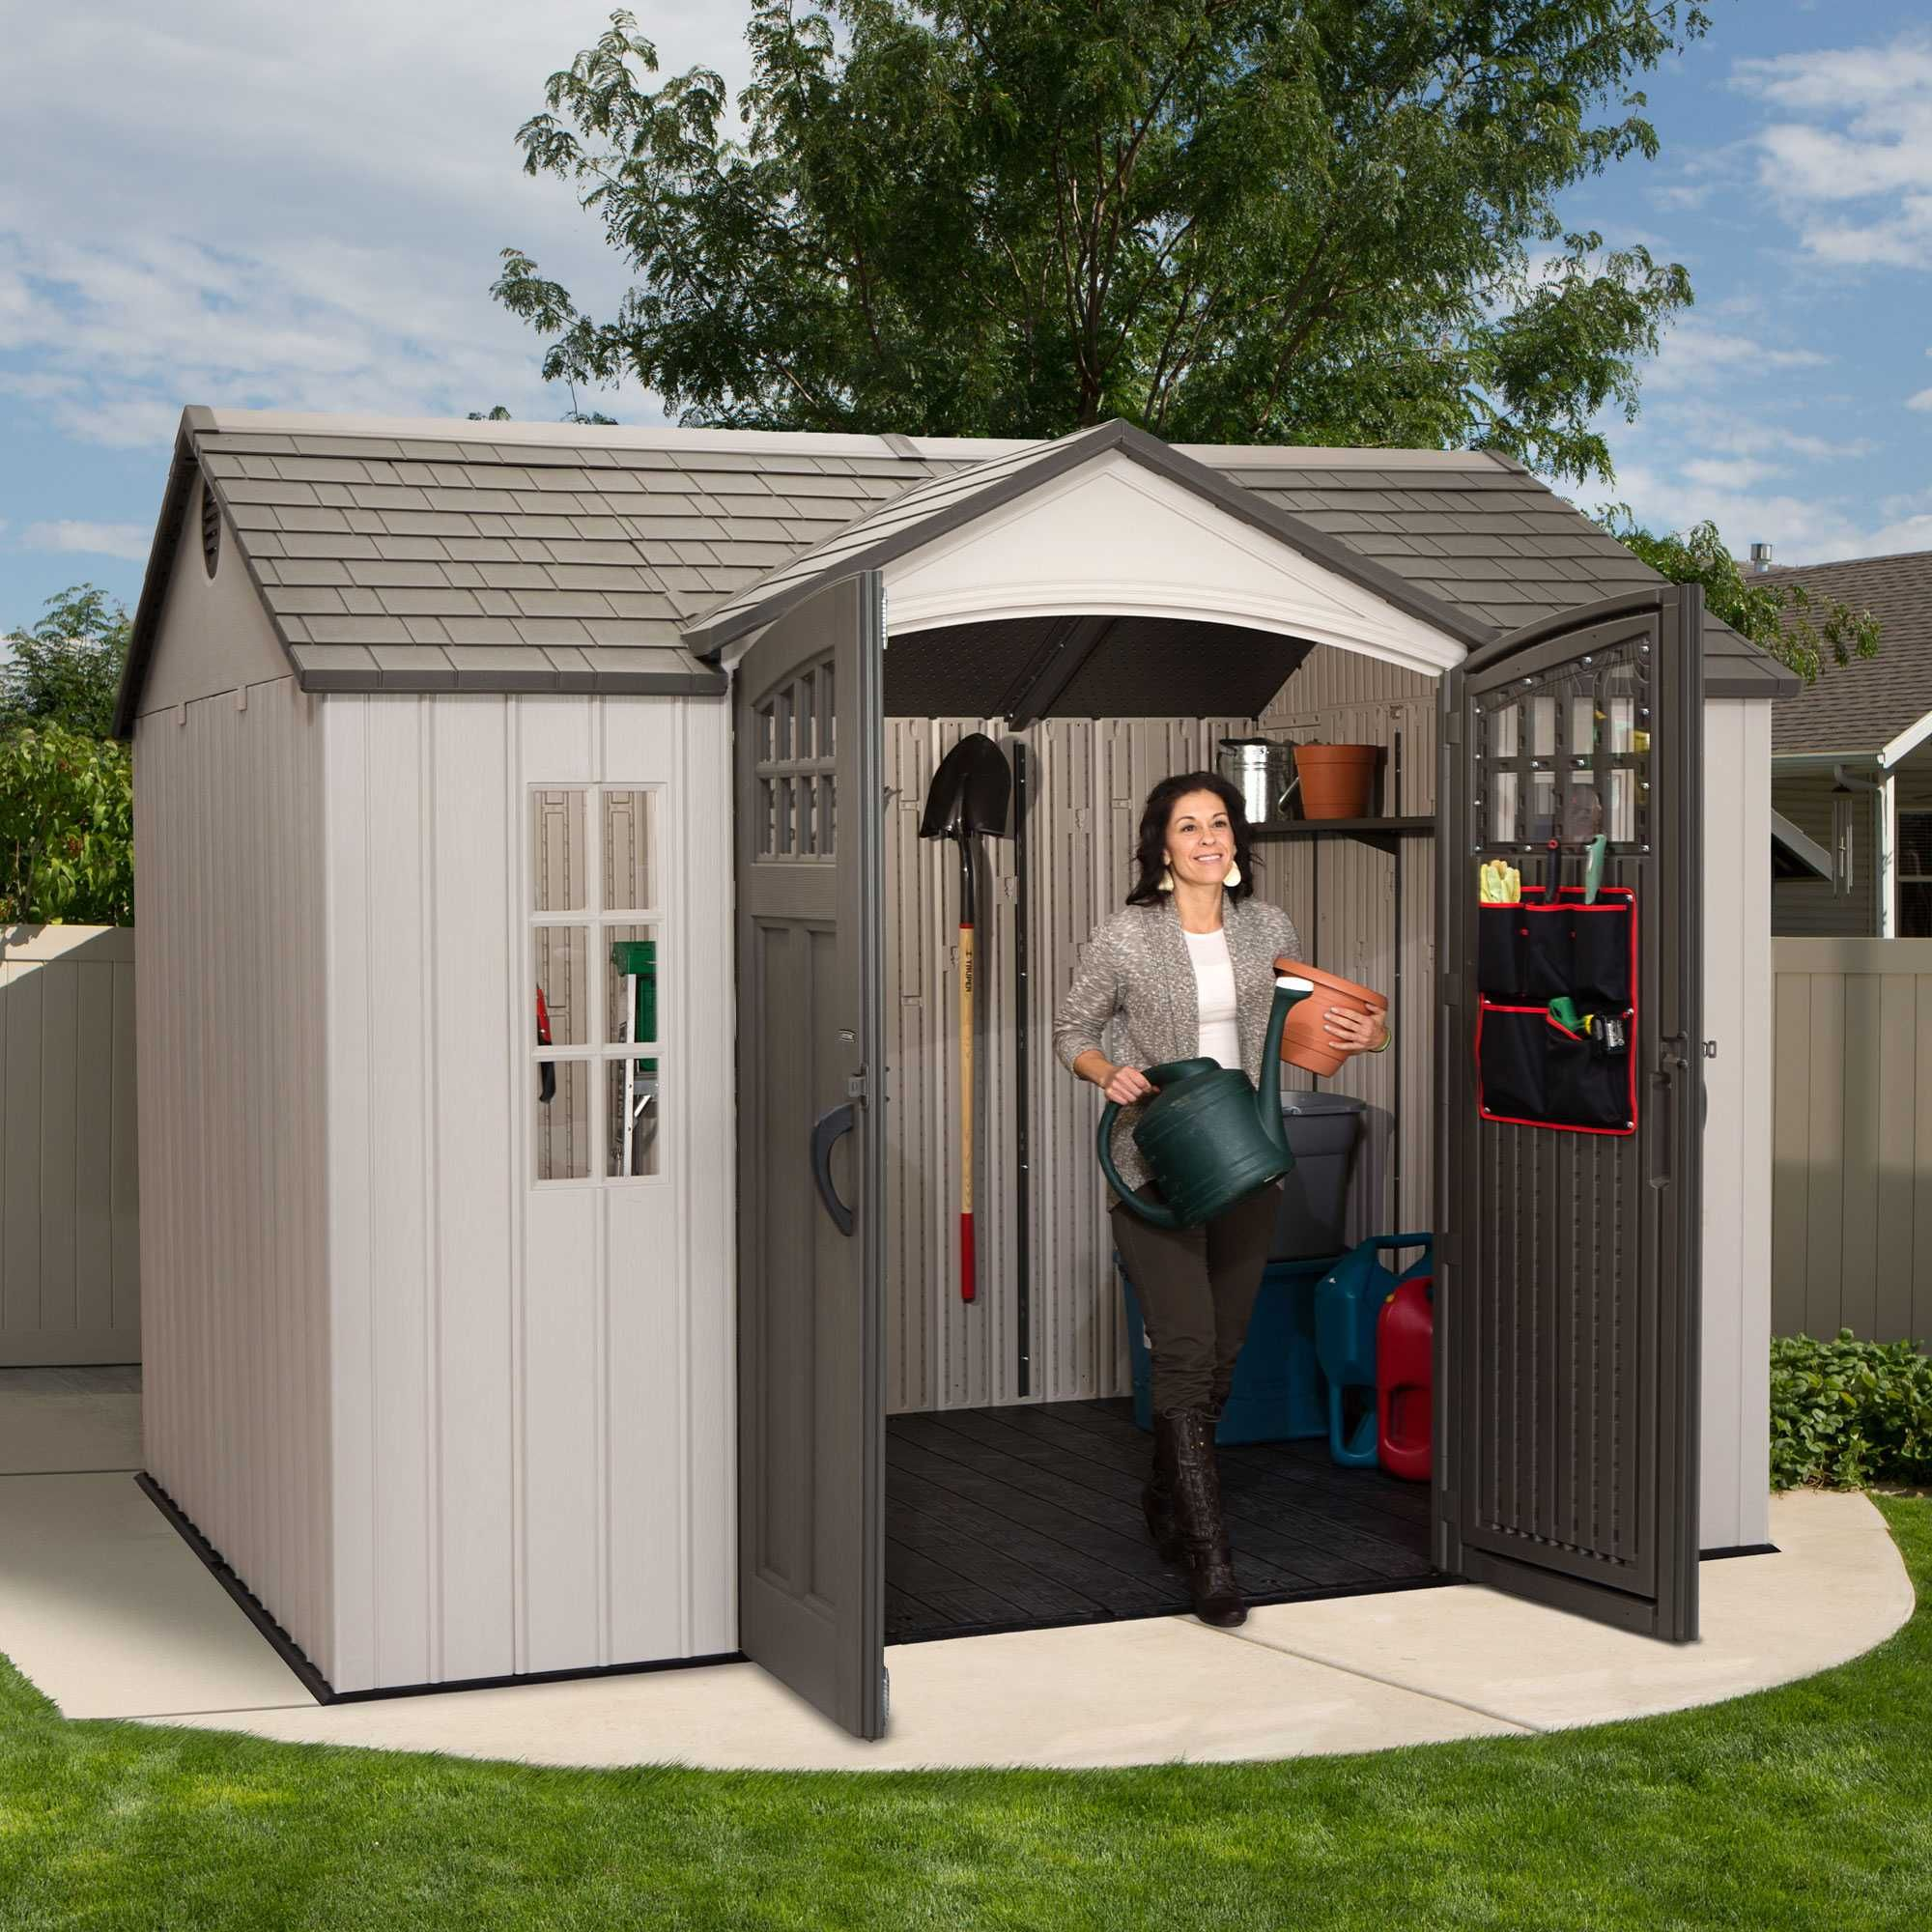 x 8 ft outdoor storage shed includes 2 shelves 1 skylight 2 vents 2 windows wall hooks and tool storage pouch